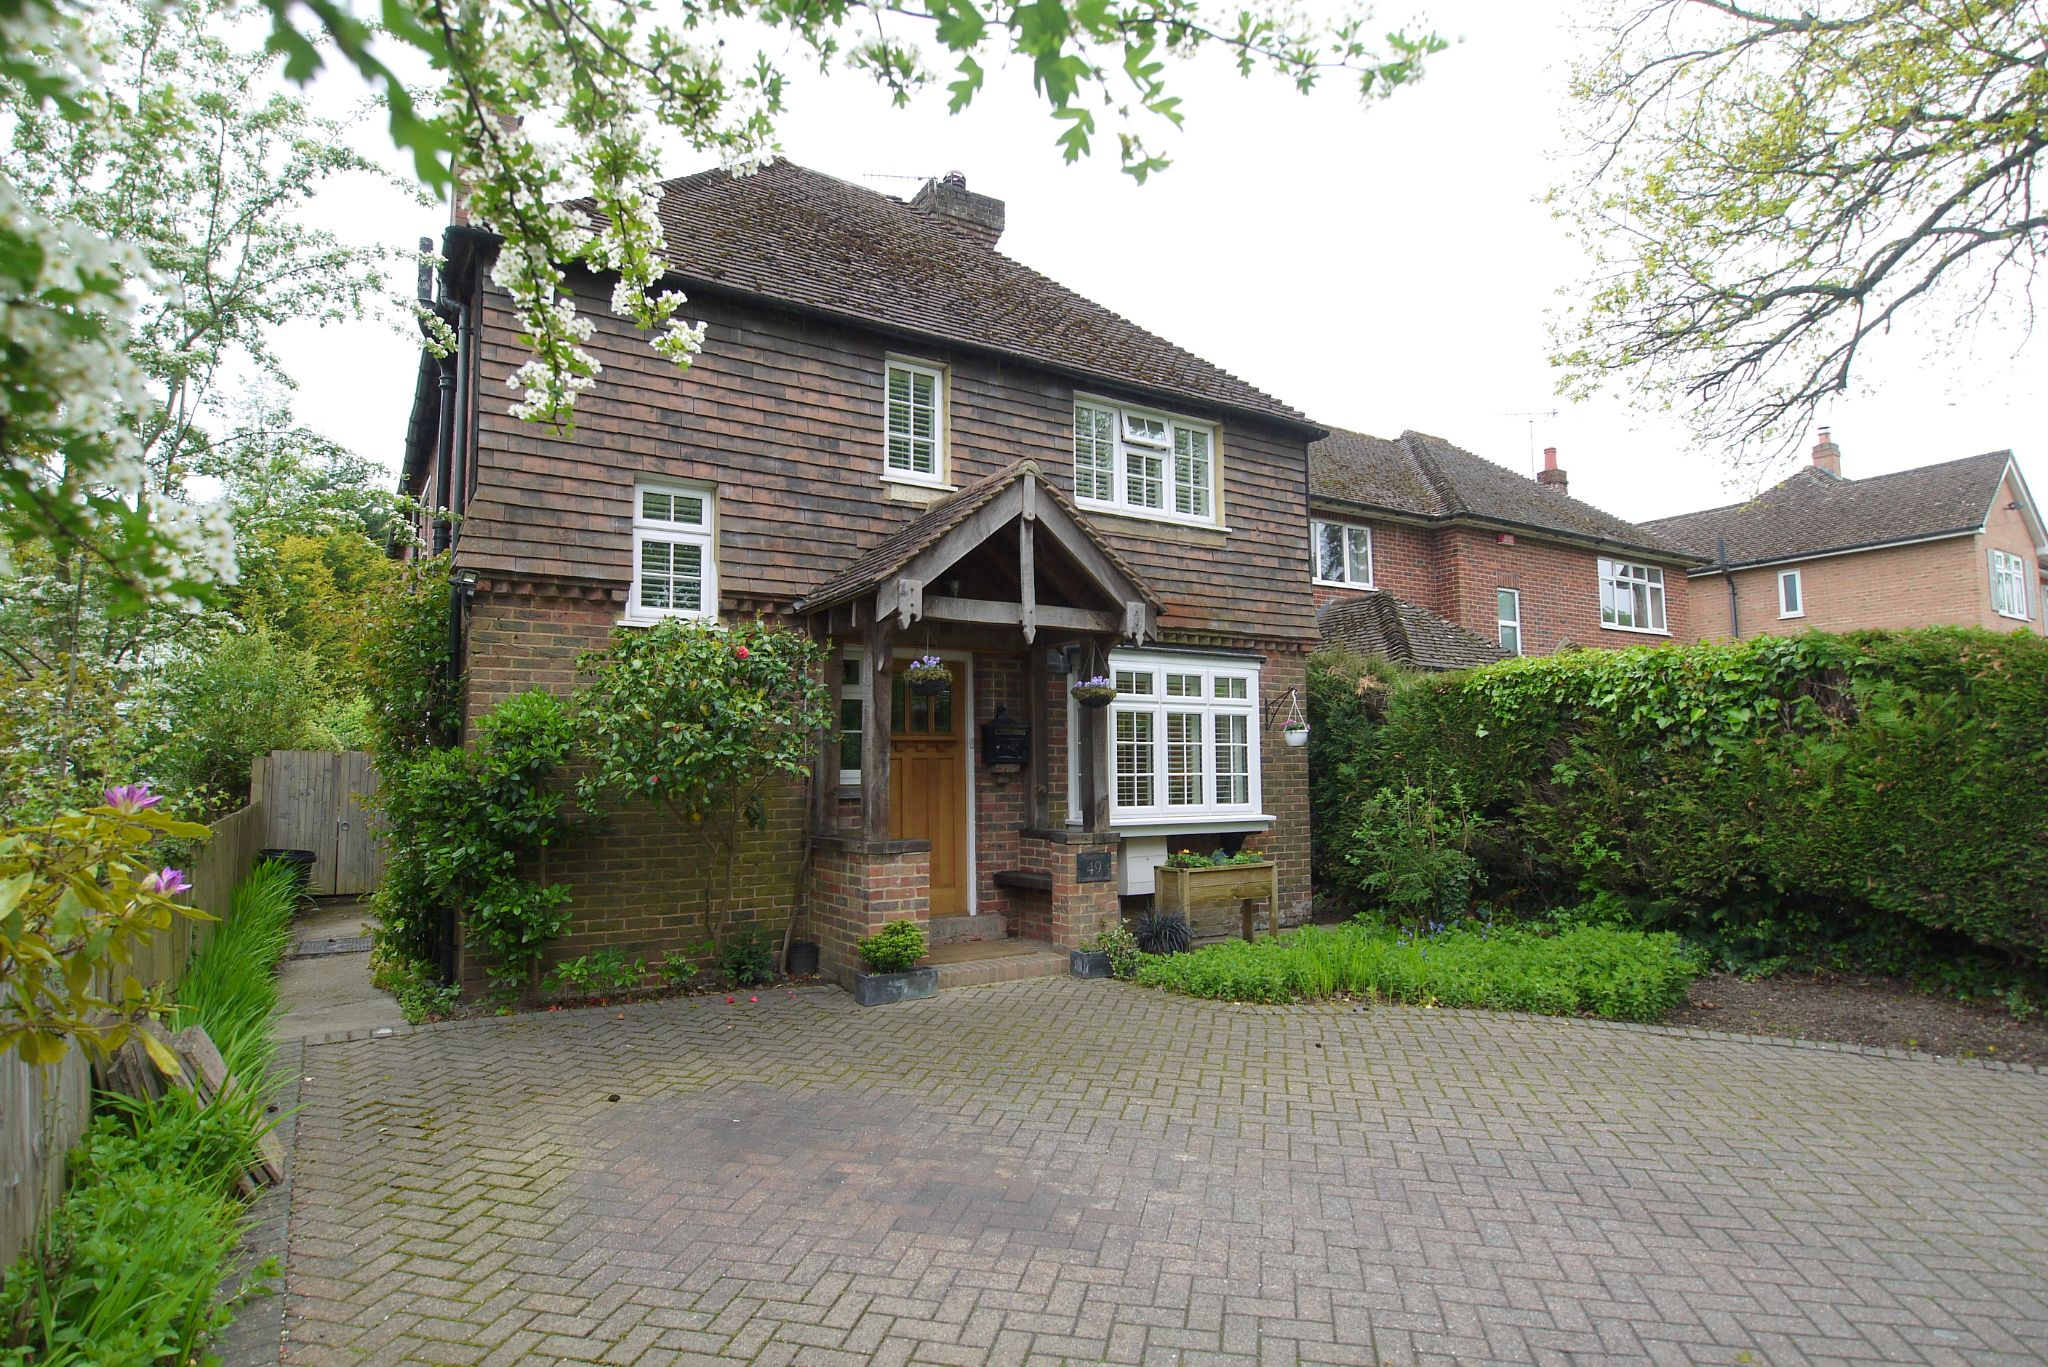 4 bedroom detached house Sale Agreed in Tonbridge - Photograph 1